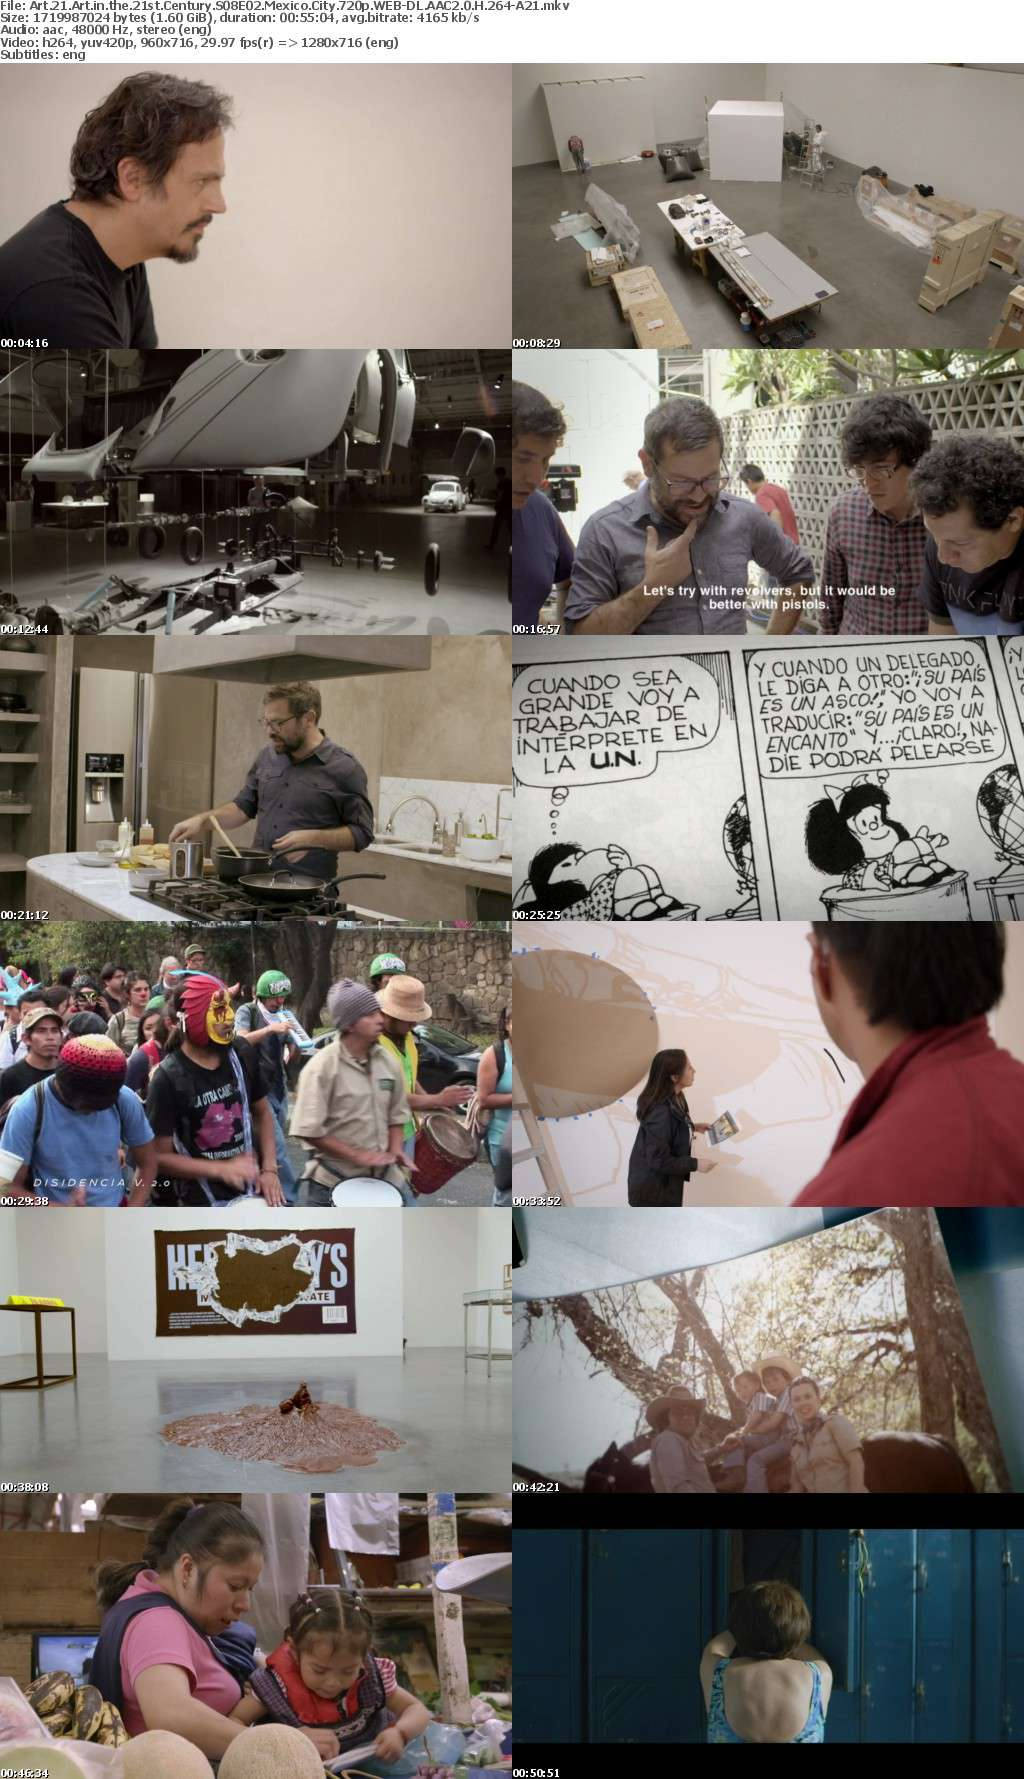 Art 21 Art in the 21st Century S08E02 Mexico City 720p WEB-DL AAC2 0 H 264-A21